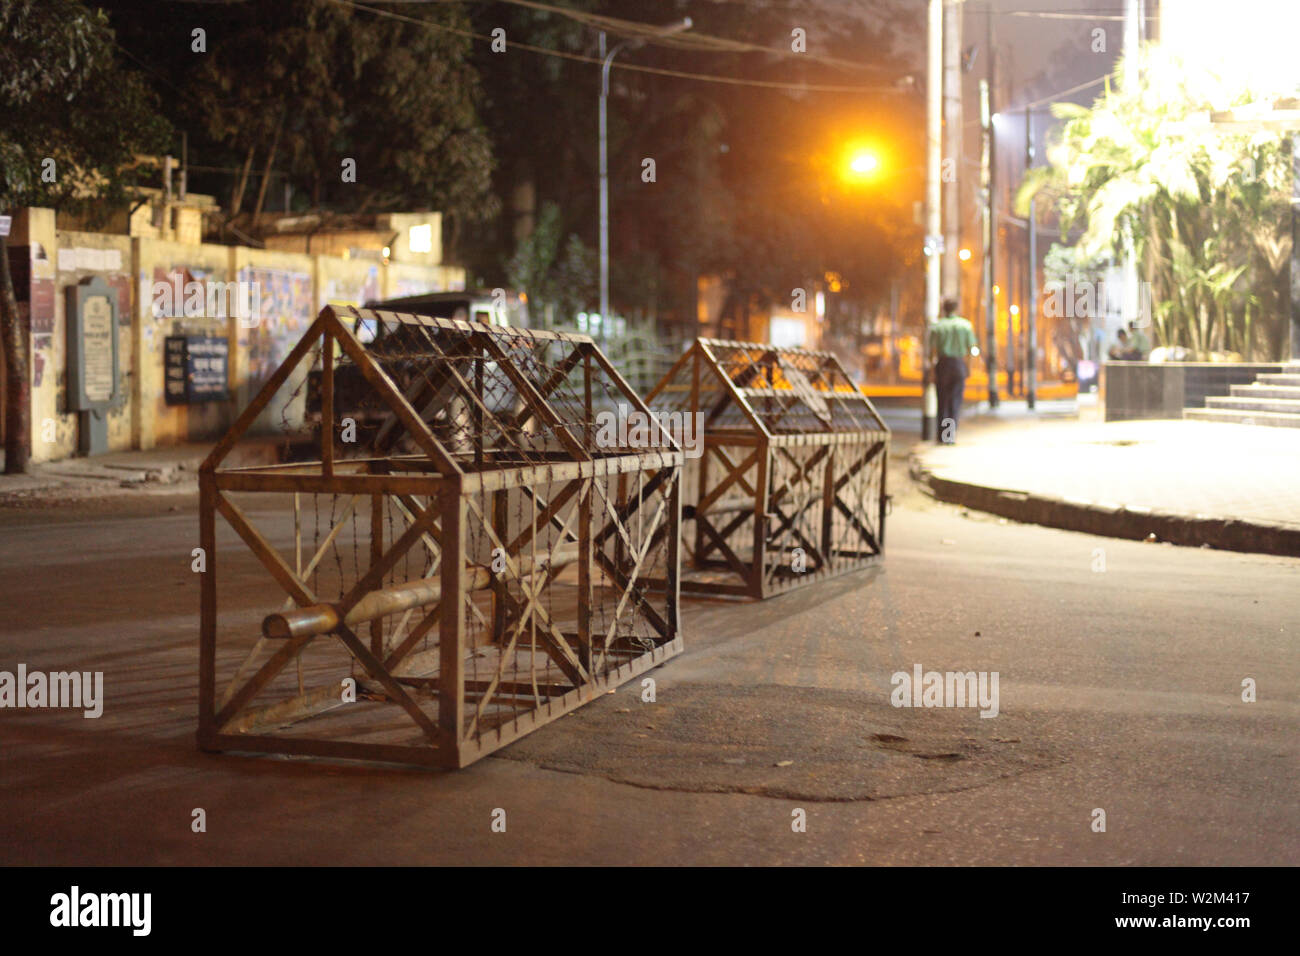 While the army have been removed from the main roads, barricades are still present at several key locations in Dhanmondi. A mutiny by Bangladesh Rifles, BDR, soldiers broke out in their Headquarter in Pilkhana, in the morning of 25th February, making the area into almost a war zone. Several thousand shots were fired from machineguns, killing more than a hundred army officers, at the BDR Pilkhana Headquarters and several civilians near the area. Dhaka, Bangladesh. February 25, 2009. - Stock Image